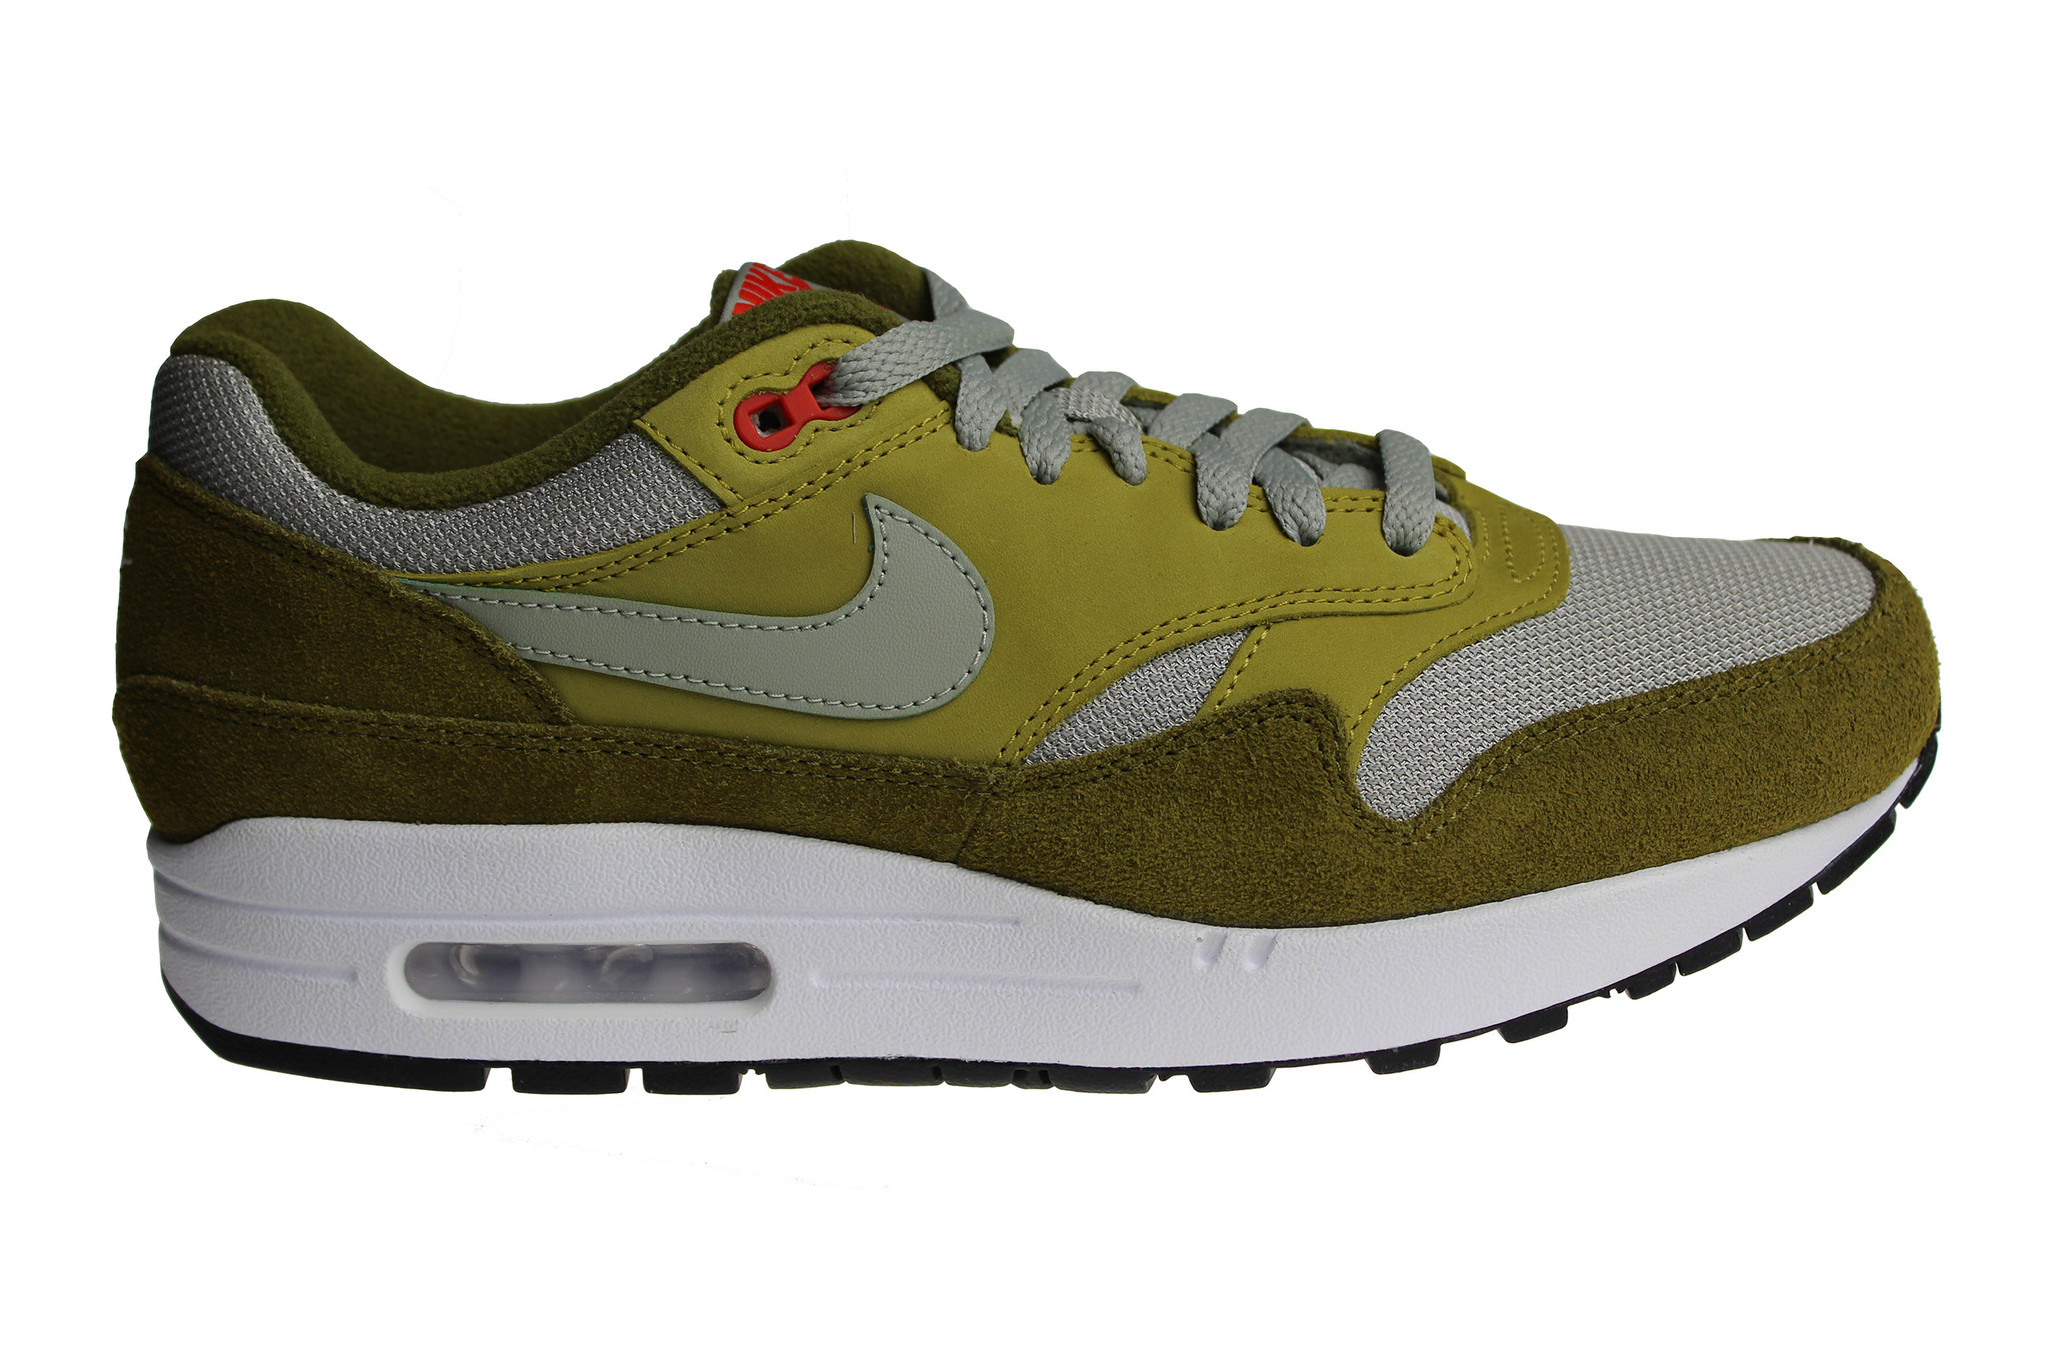 Nike Air Max 1 Premium Retro Green Curry 908366 300